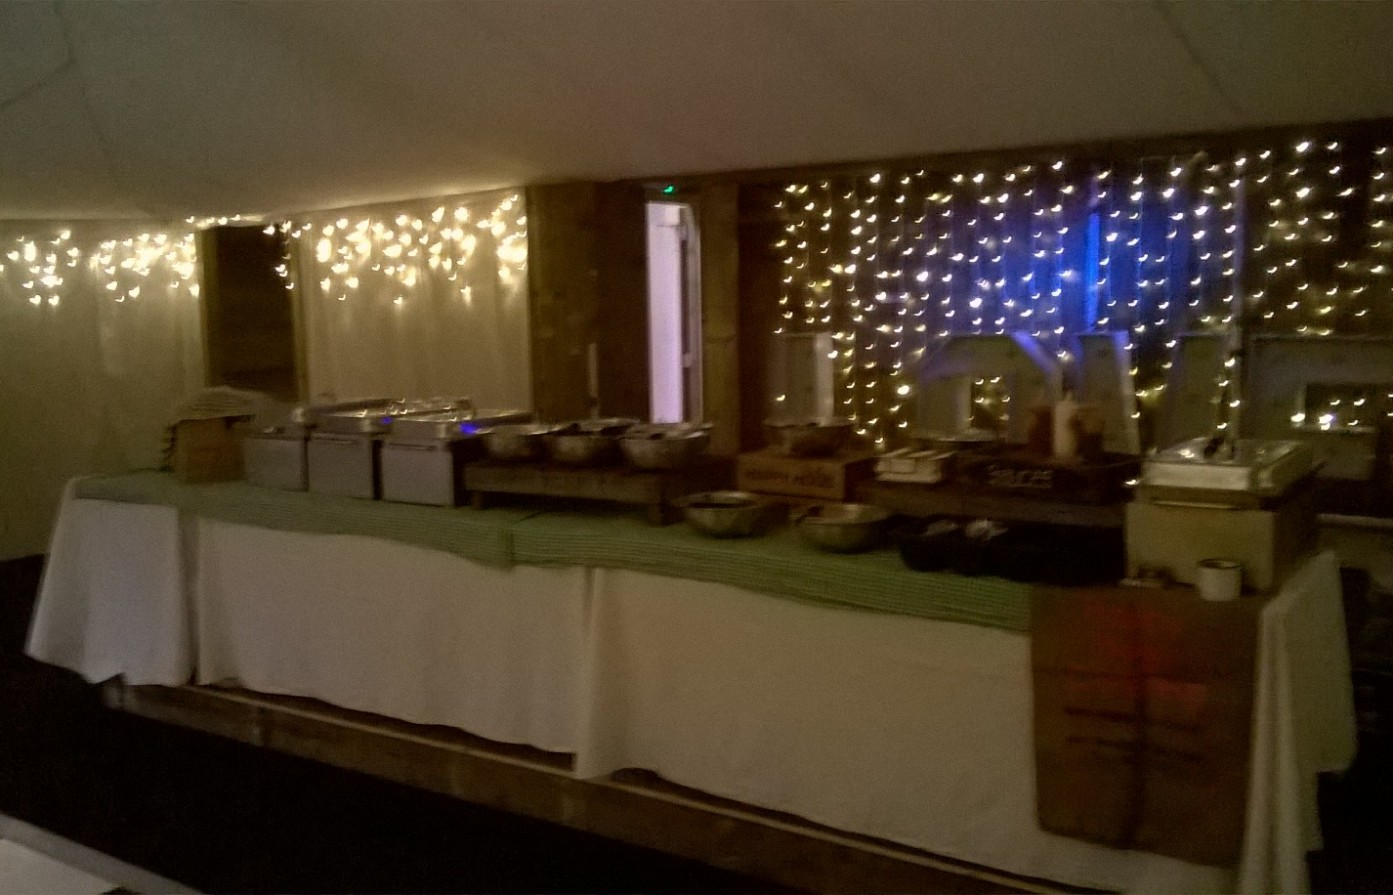 Yorkshire Wedding Catering